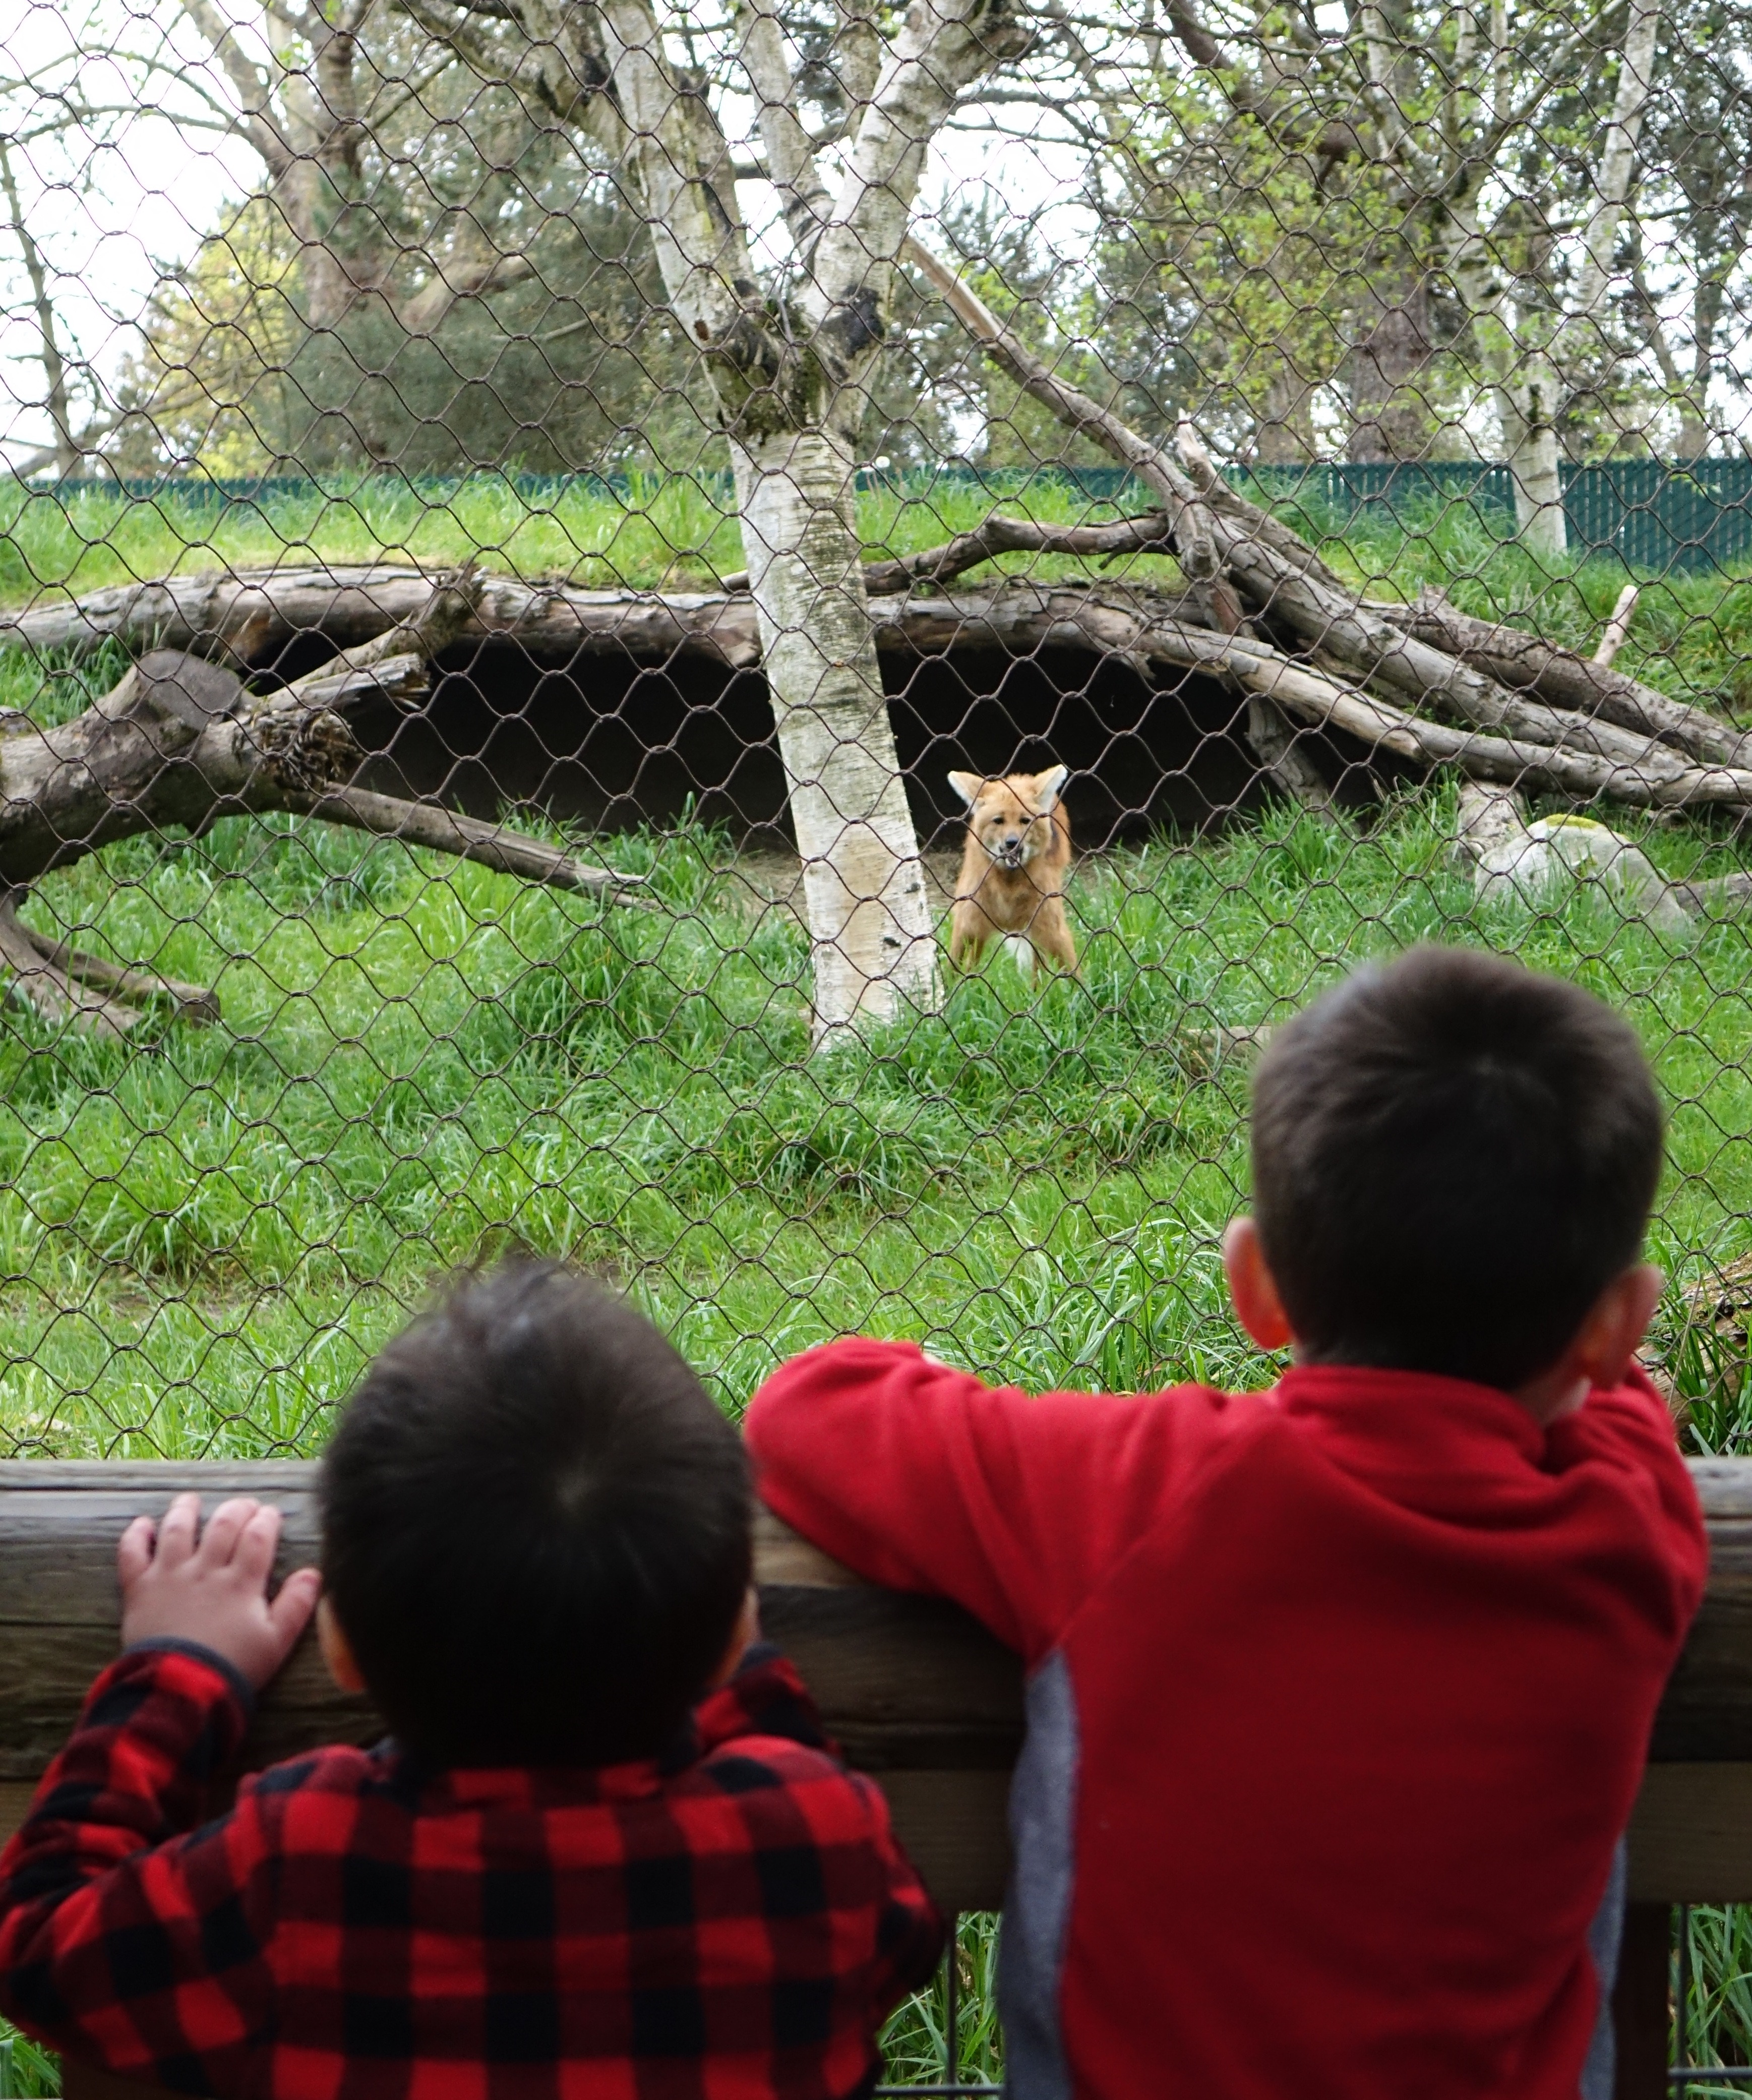 A red wolf stares down our spectators.